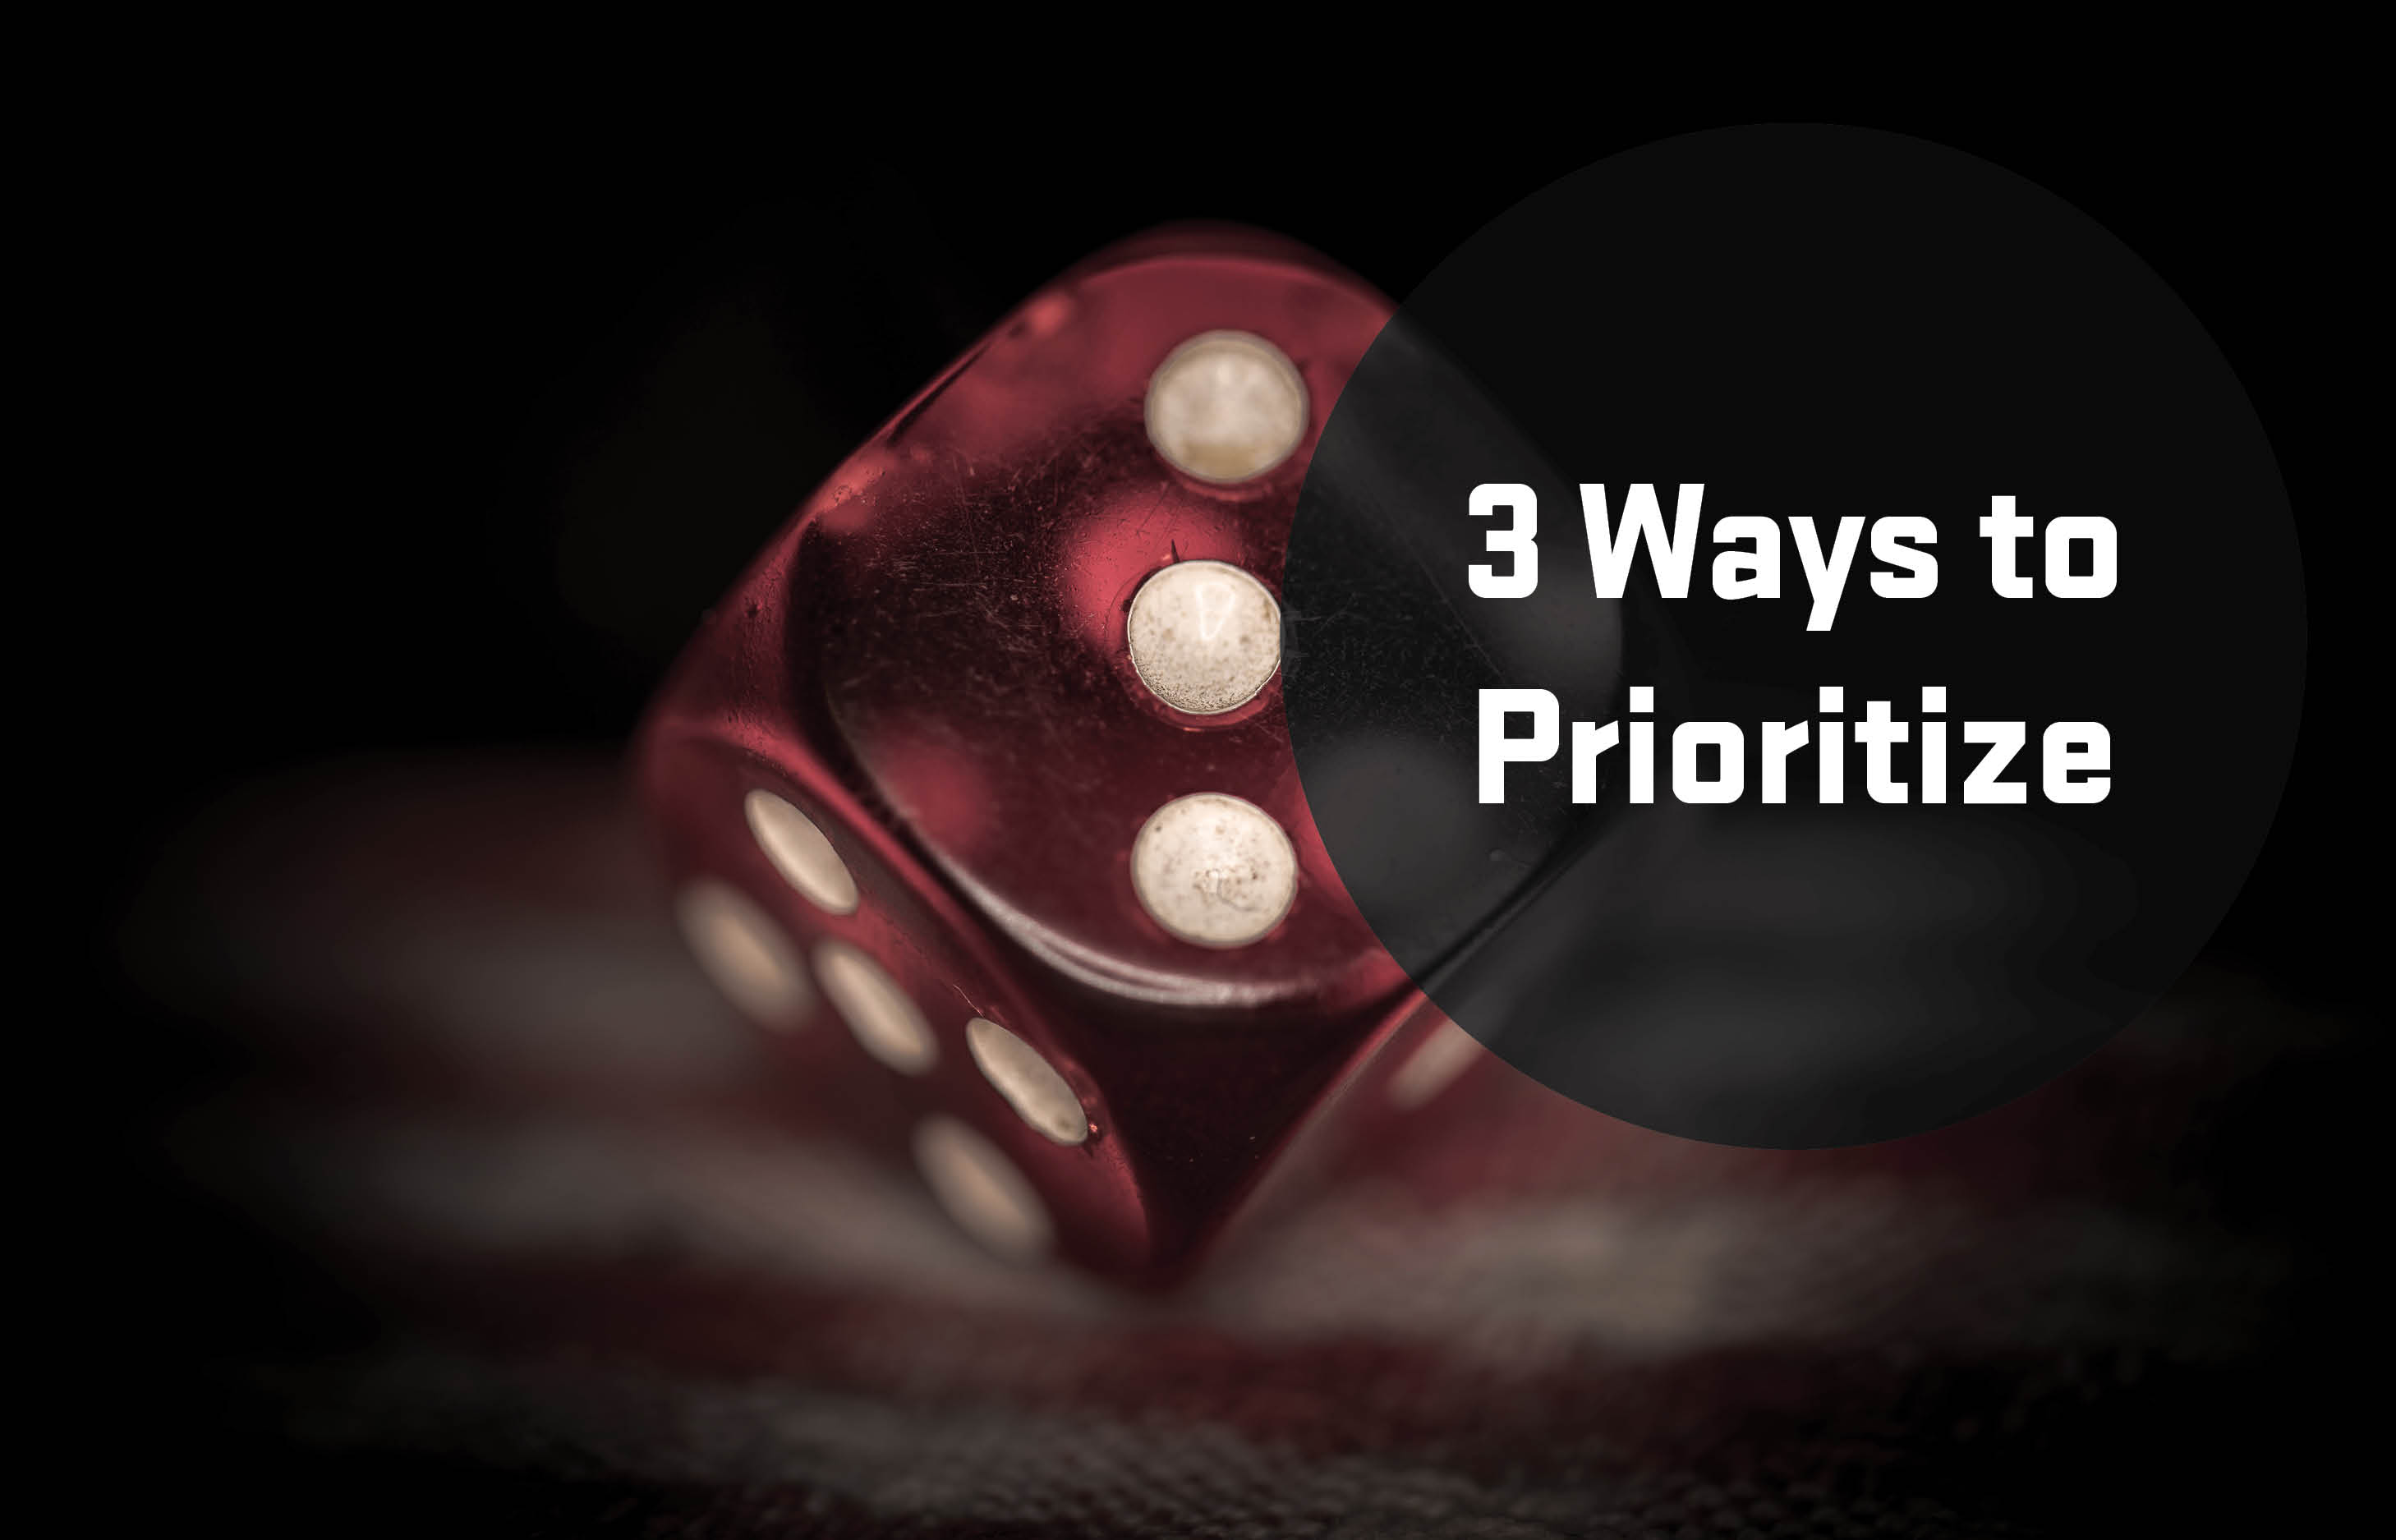 3 ways to prioritize